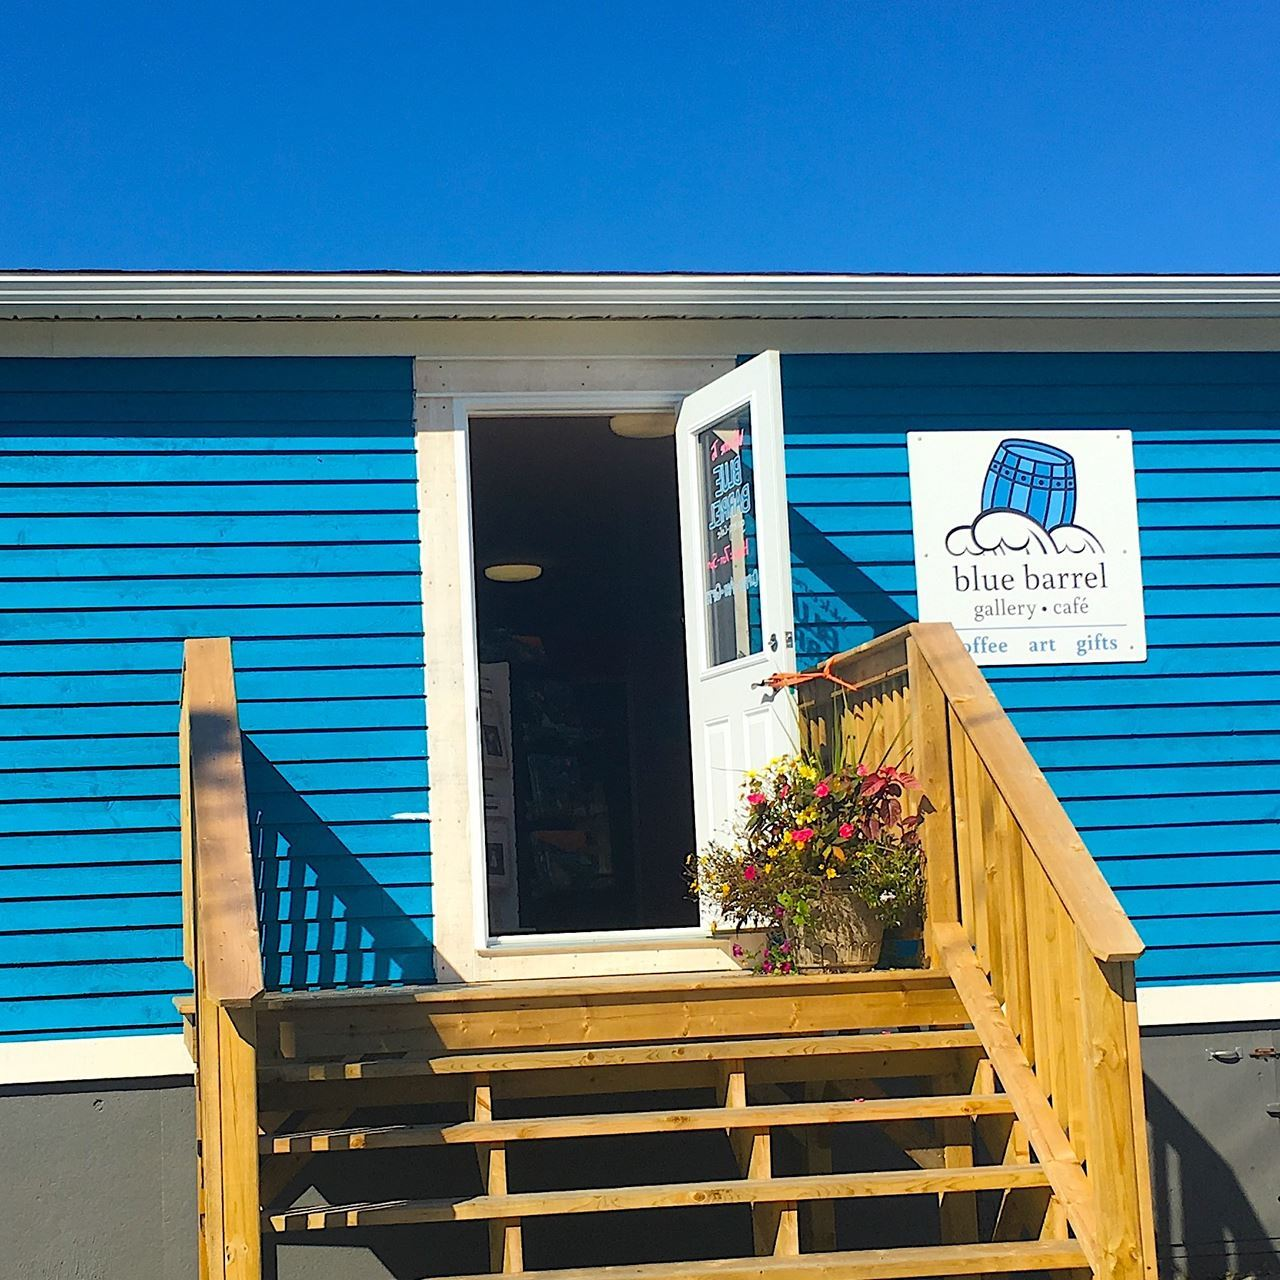 Blue Barrel Gallery Cafe at the Anchor Inn Hotel Twillingate for art, gifts, coffee